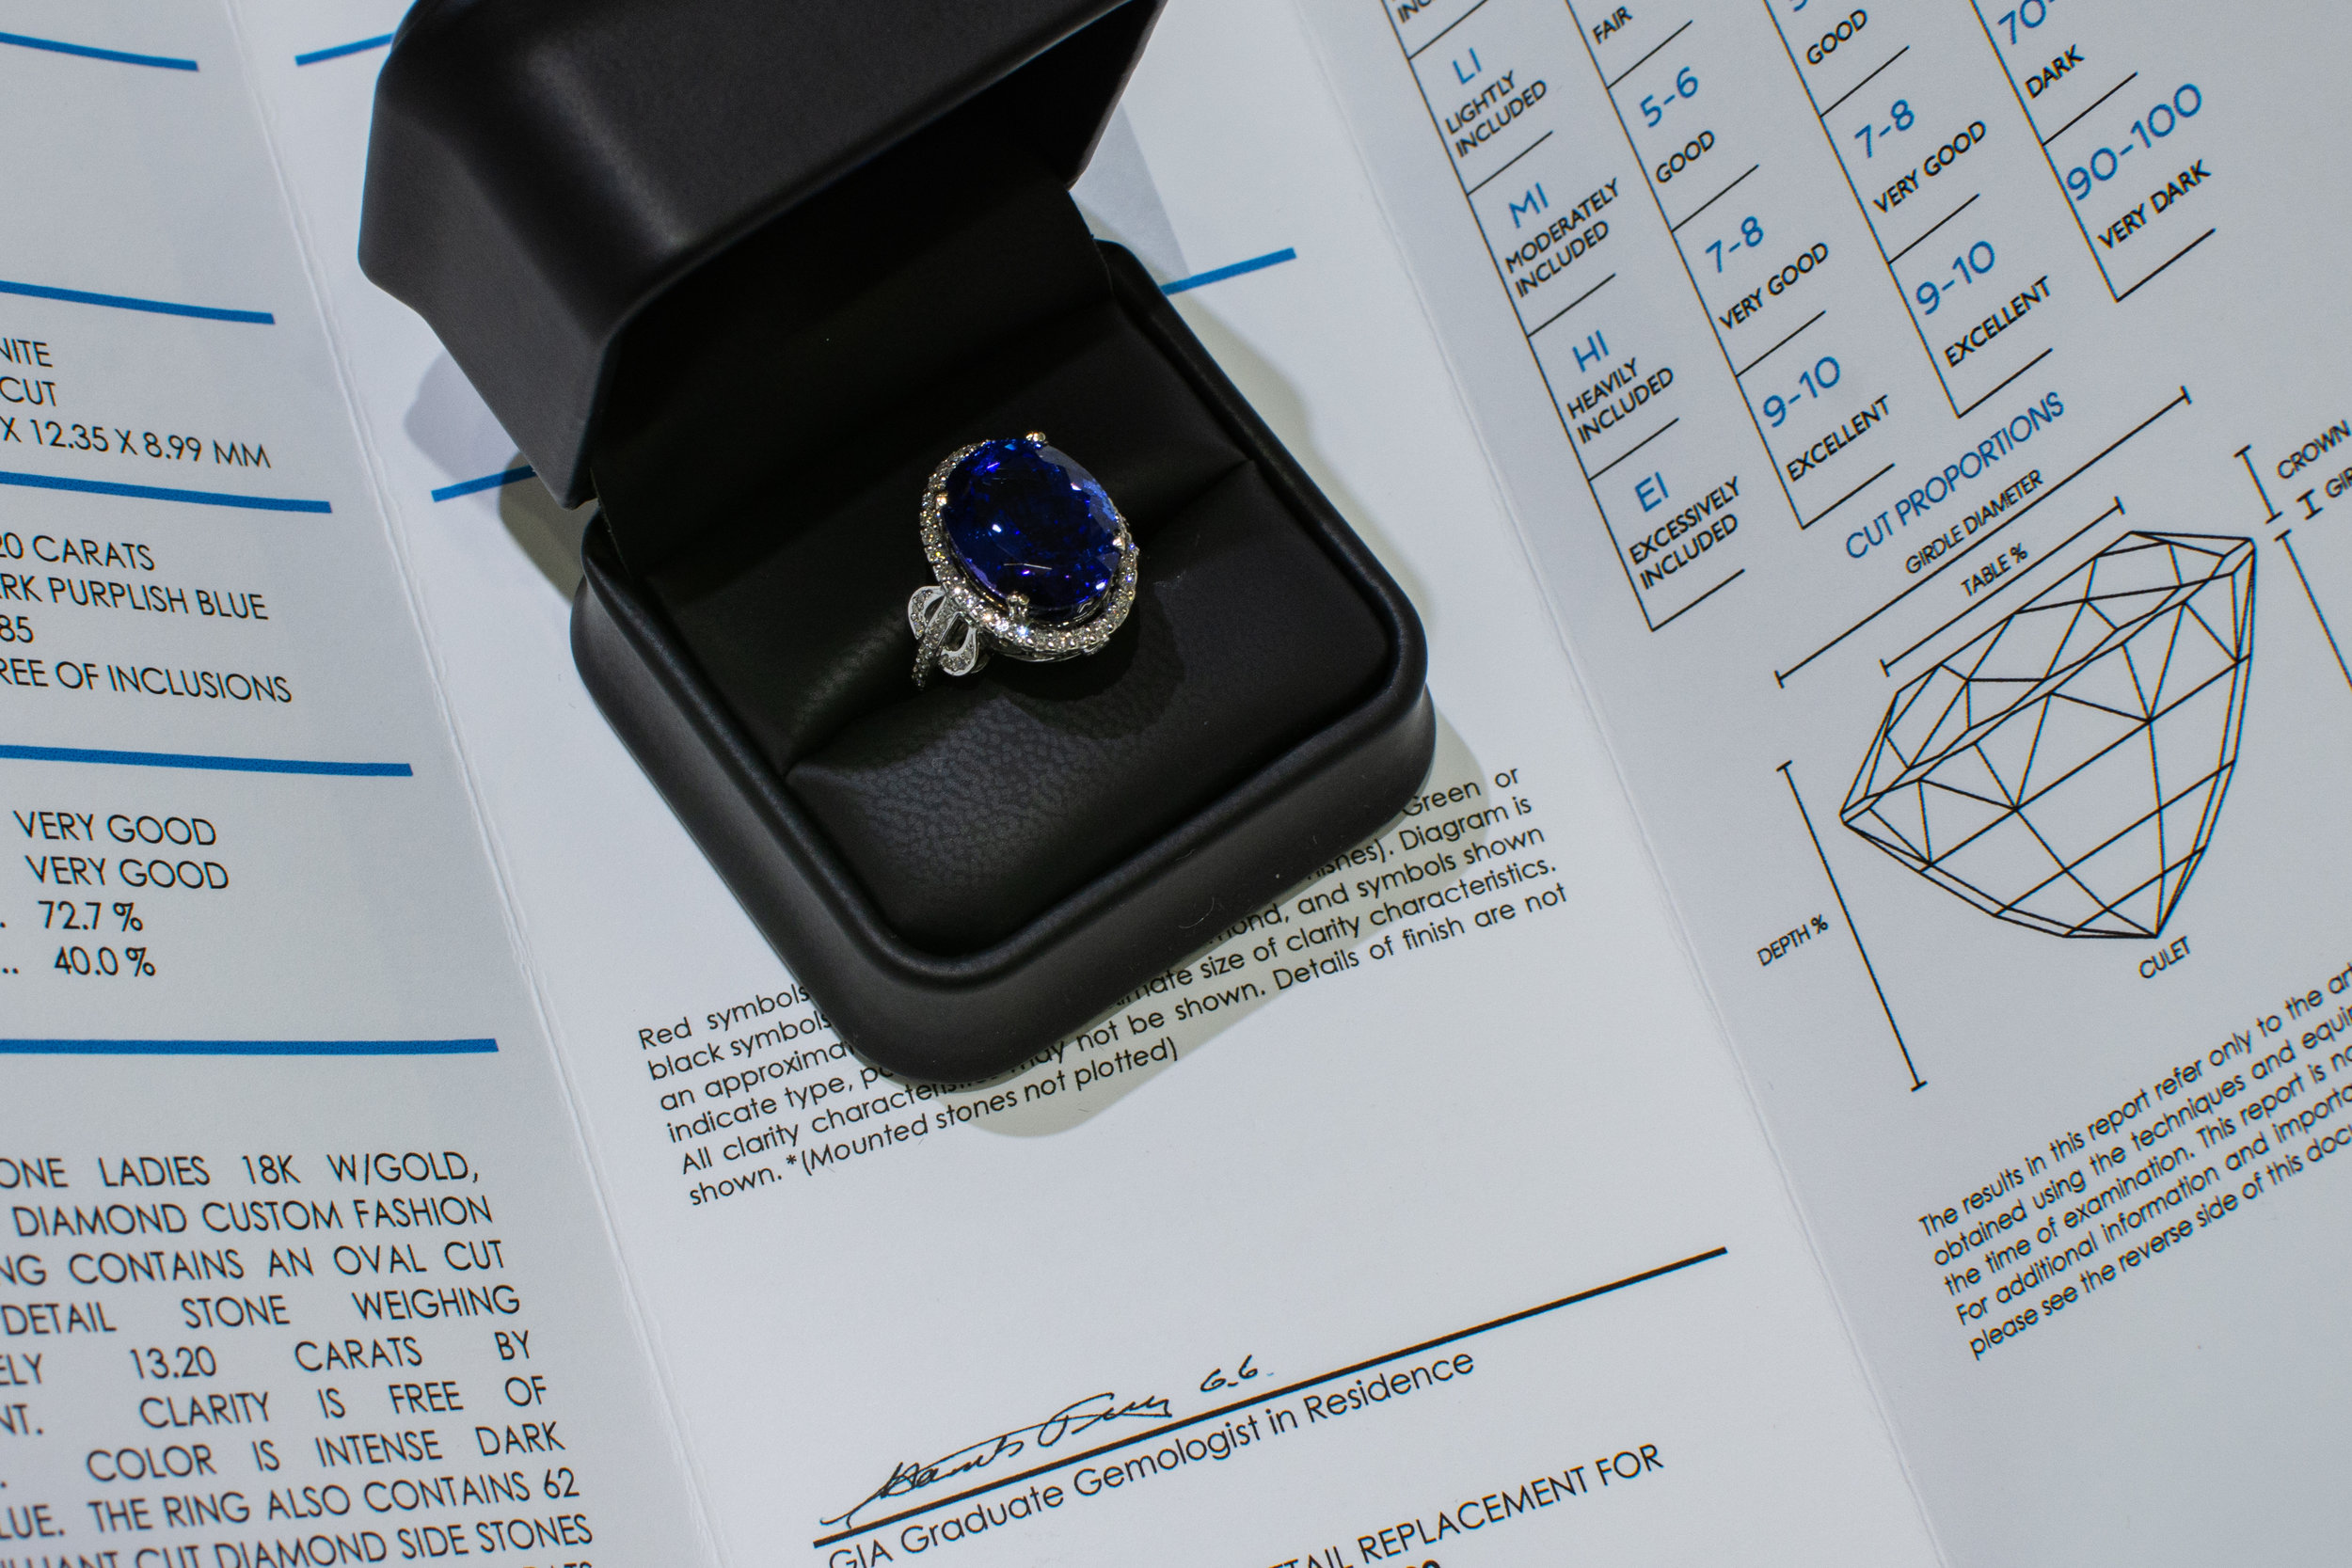 Appraisal - Visit Golden Nugget Pawn's certified appraisal specialists to discover the true value of some of your most valued possessions. Jewelry, gold, silver and more! We're willing to assess the value at no cost to you.